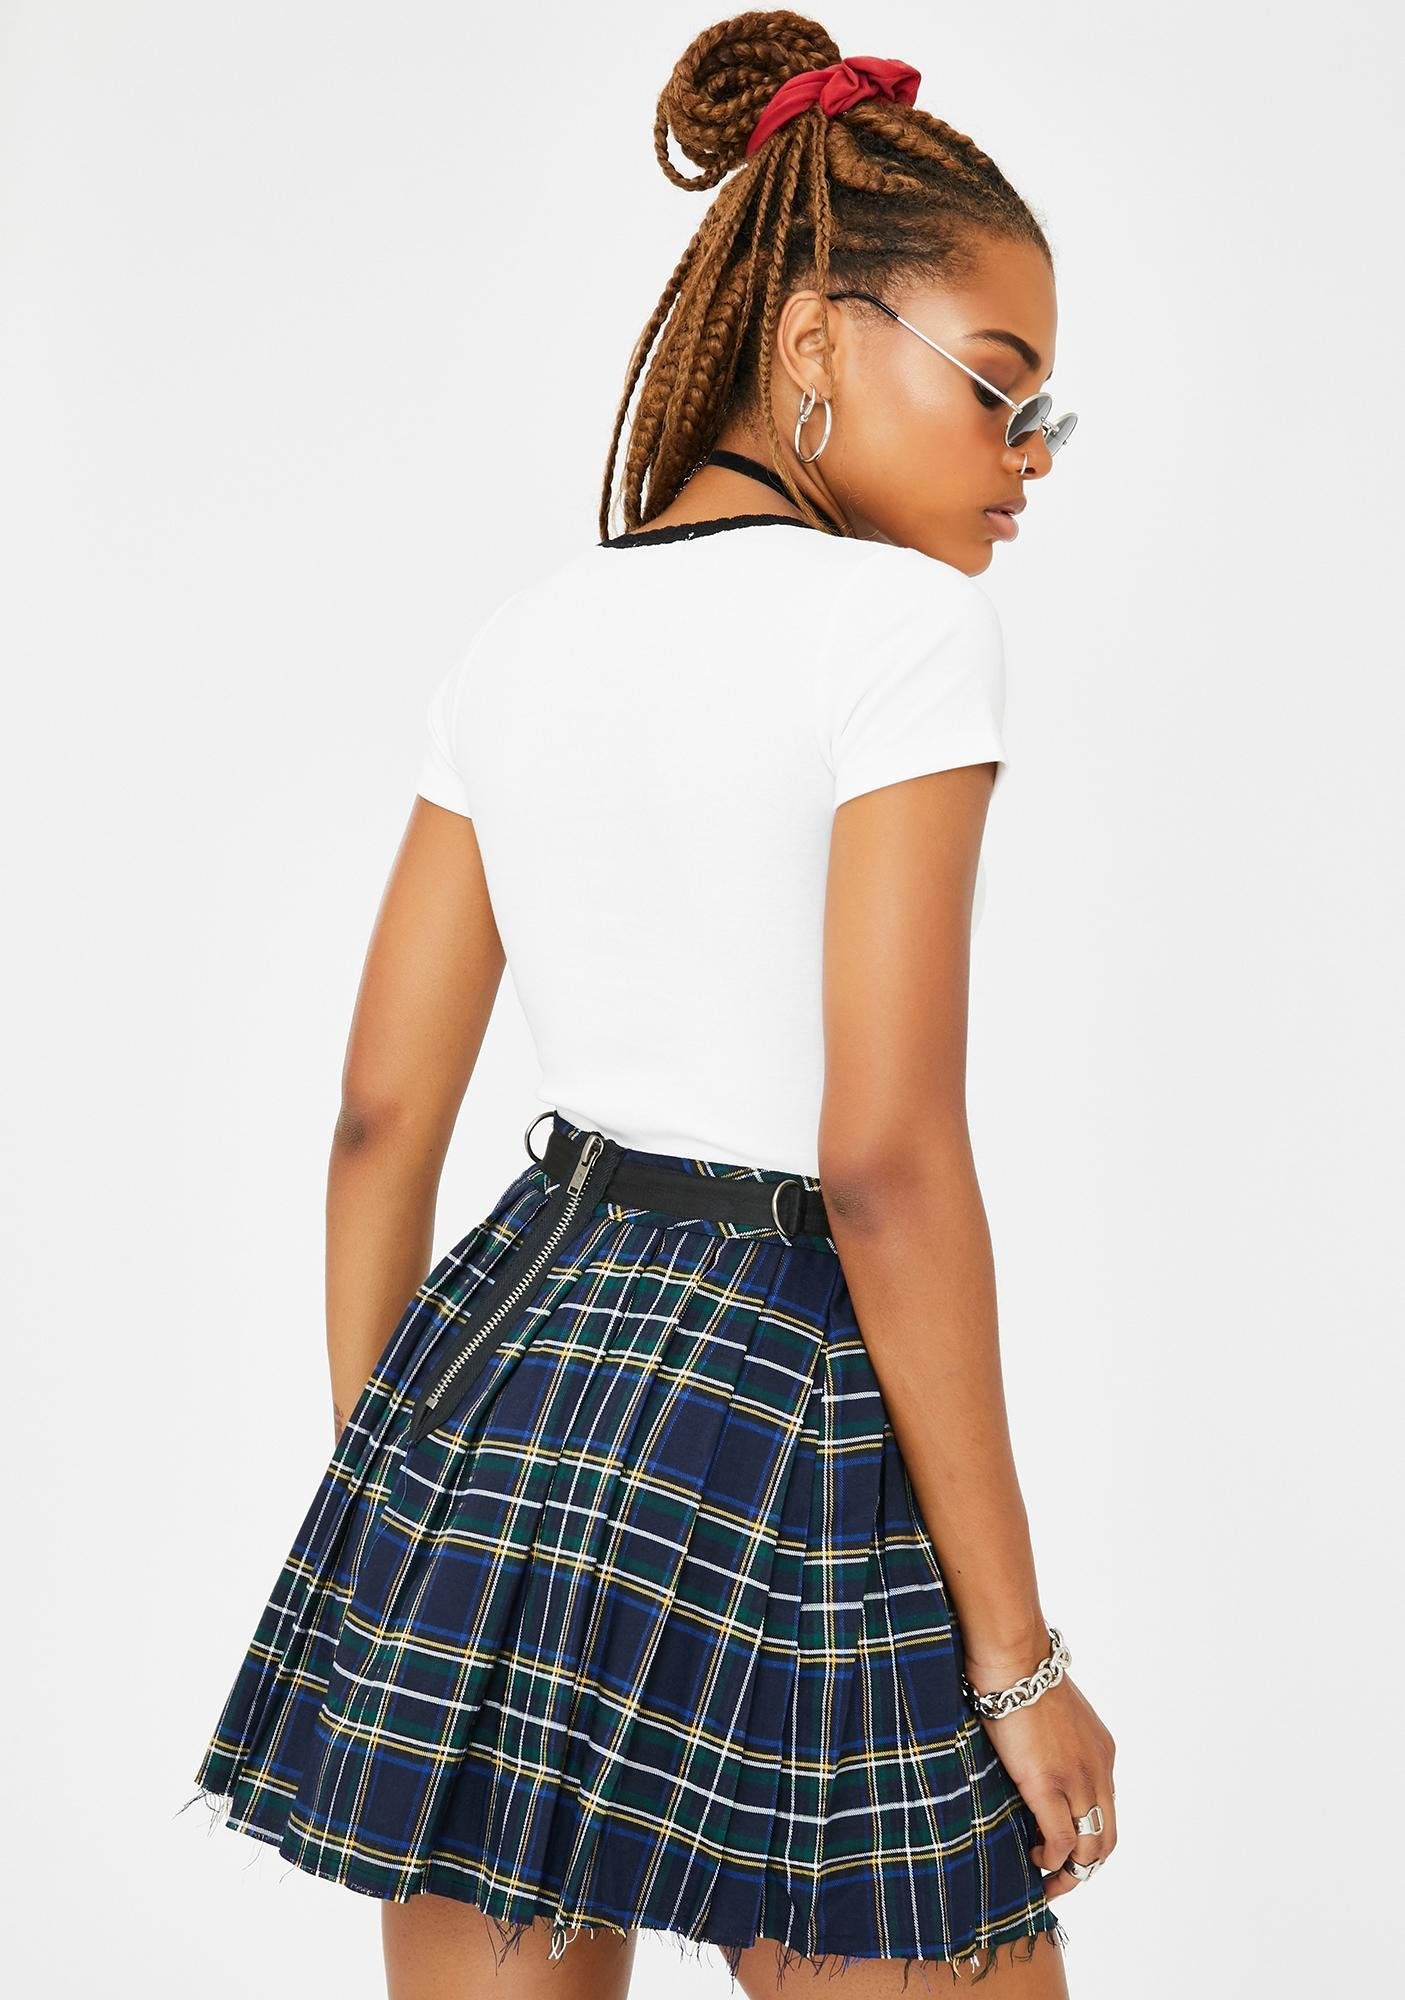 Current Mood Dress Code Plaid Skirt